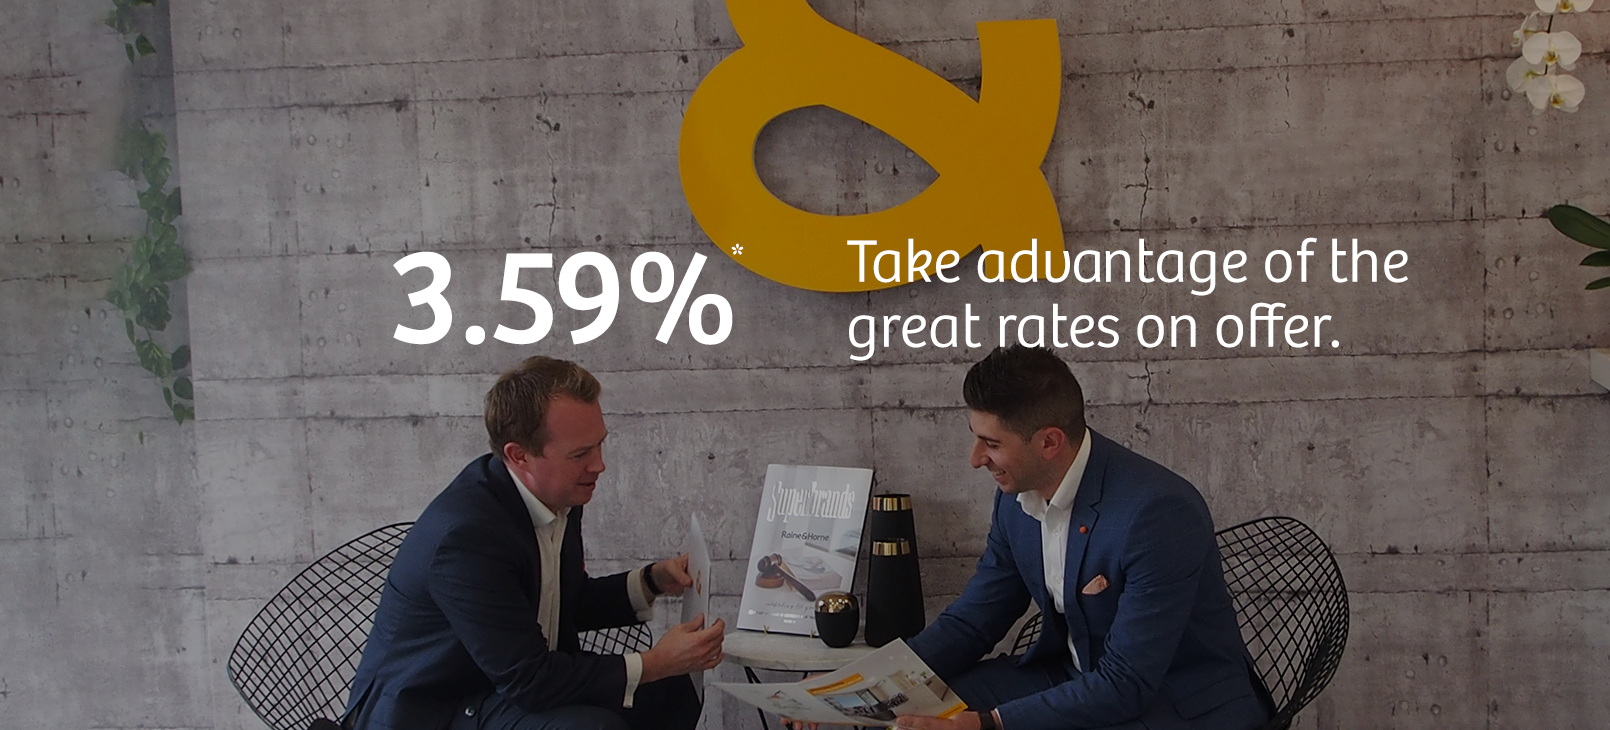 Take advantage of the great rates on offer